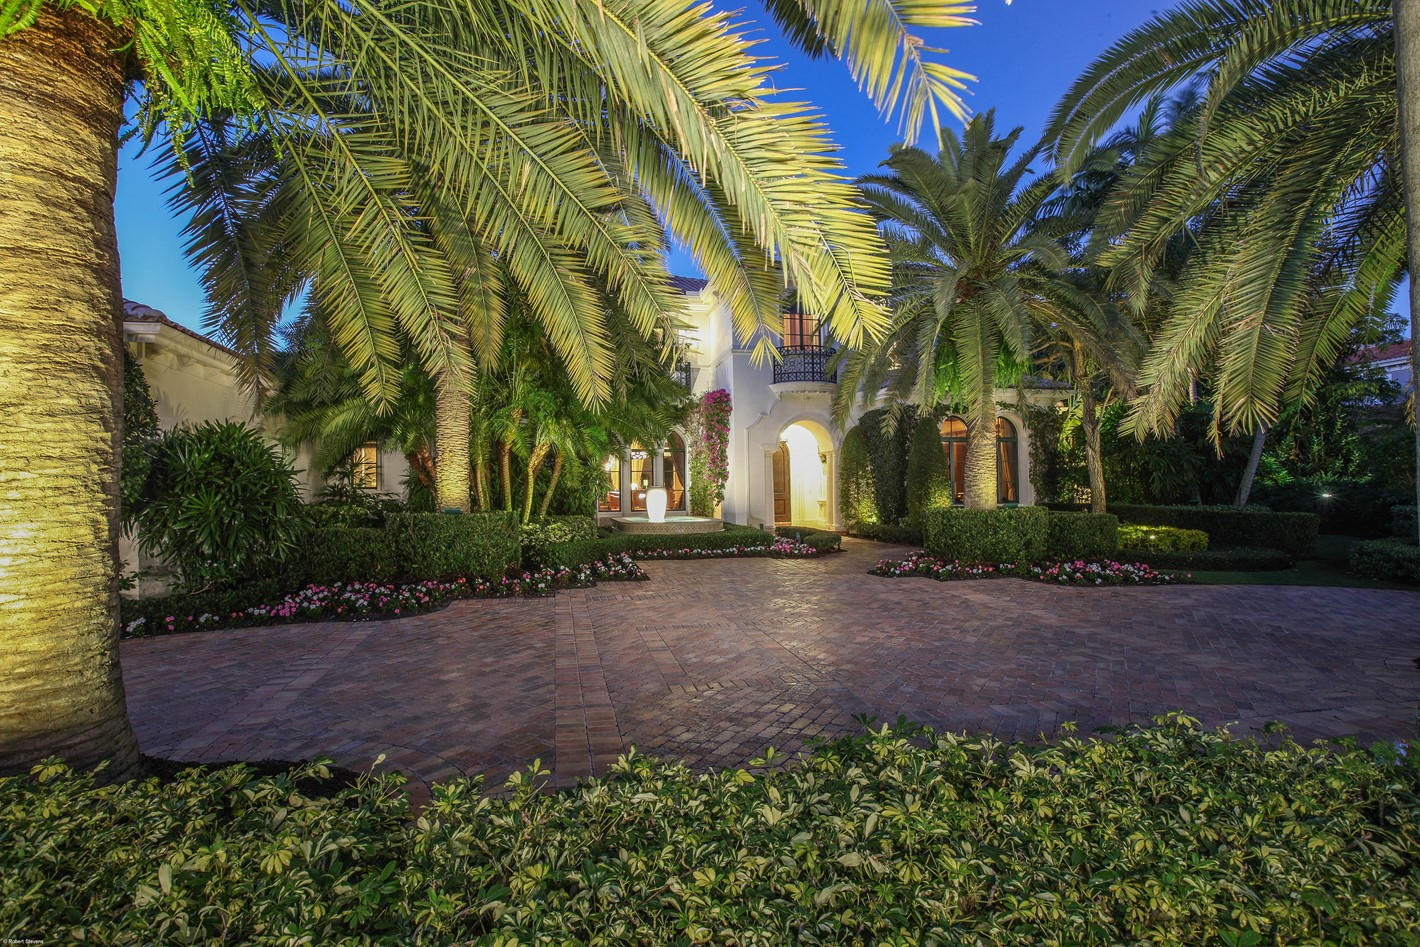 11703 San Sovino Court, Palm Beach Gardens, Florida 33418, 6 Bedrooms Bedrooms, ,8.1 BathroomsBathrooms,A,Single family,San Sovino,RX-10090822